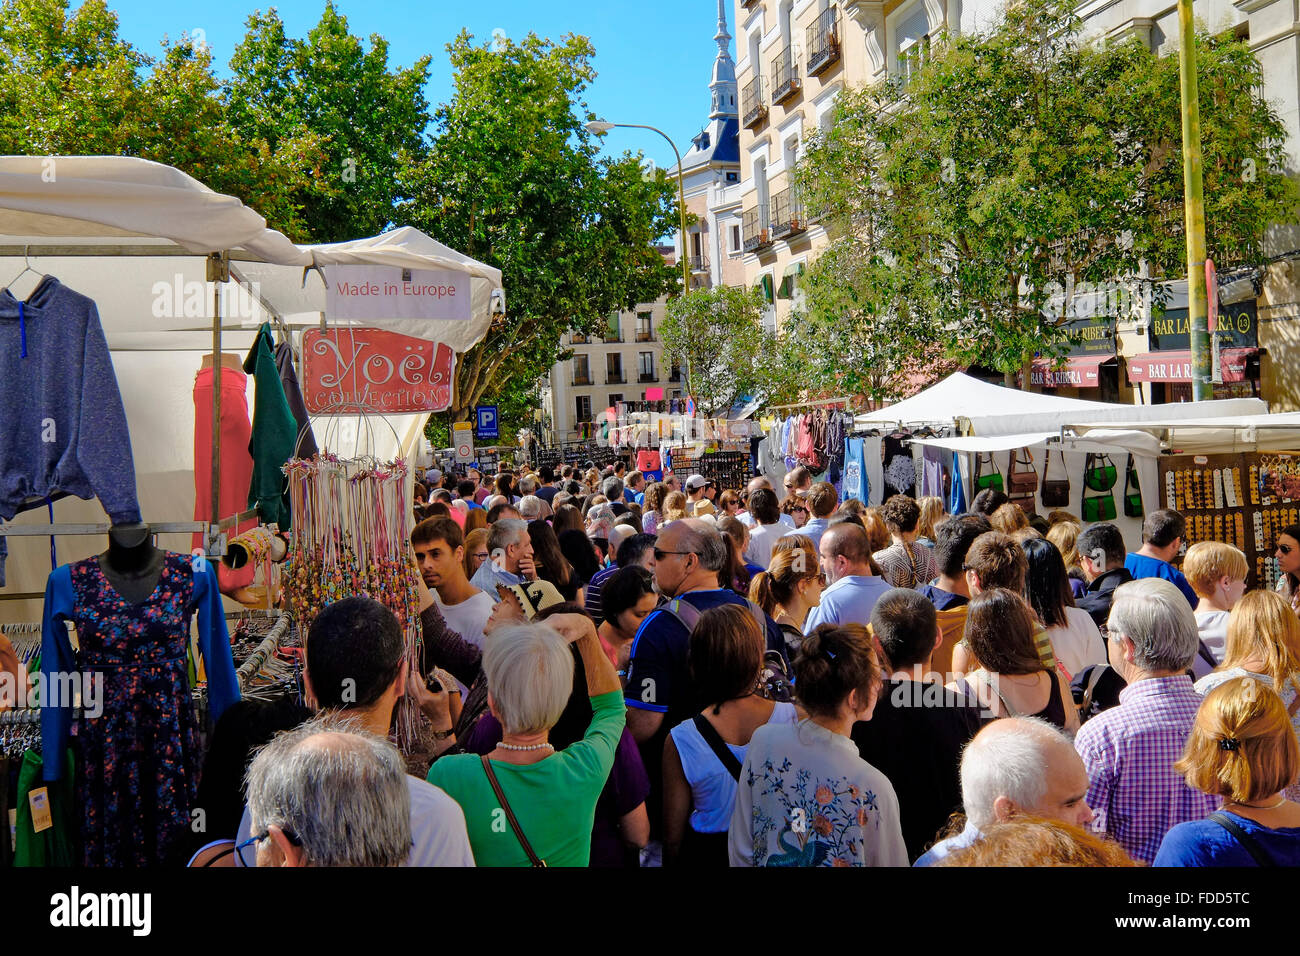 Plaza de cascorro stock photos plaza de cascorro stock - Cascorro madrid rastro ...